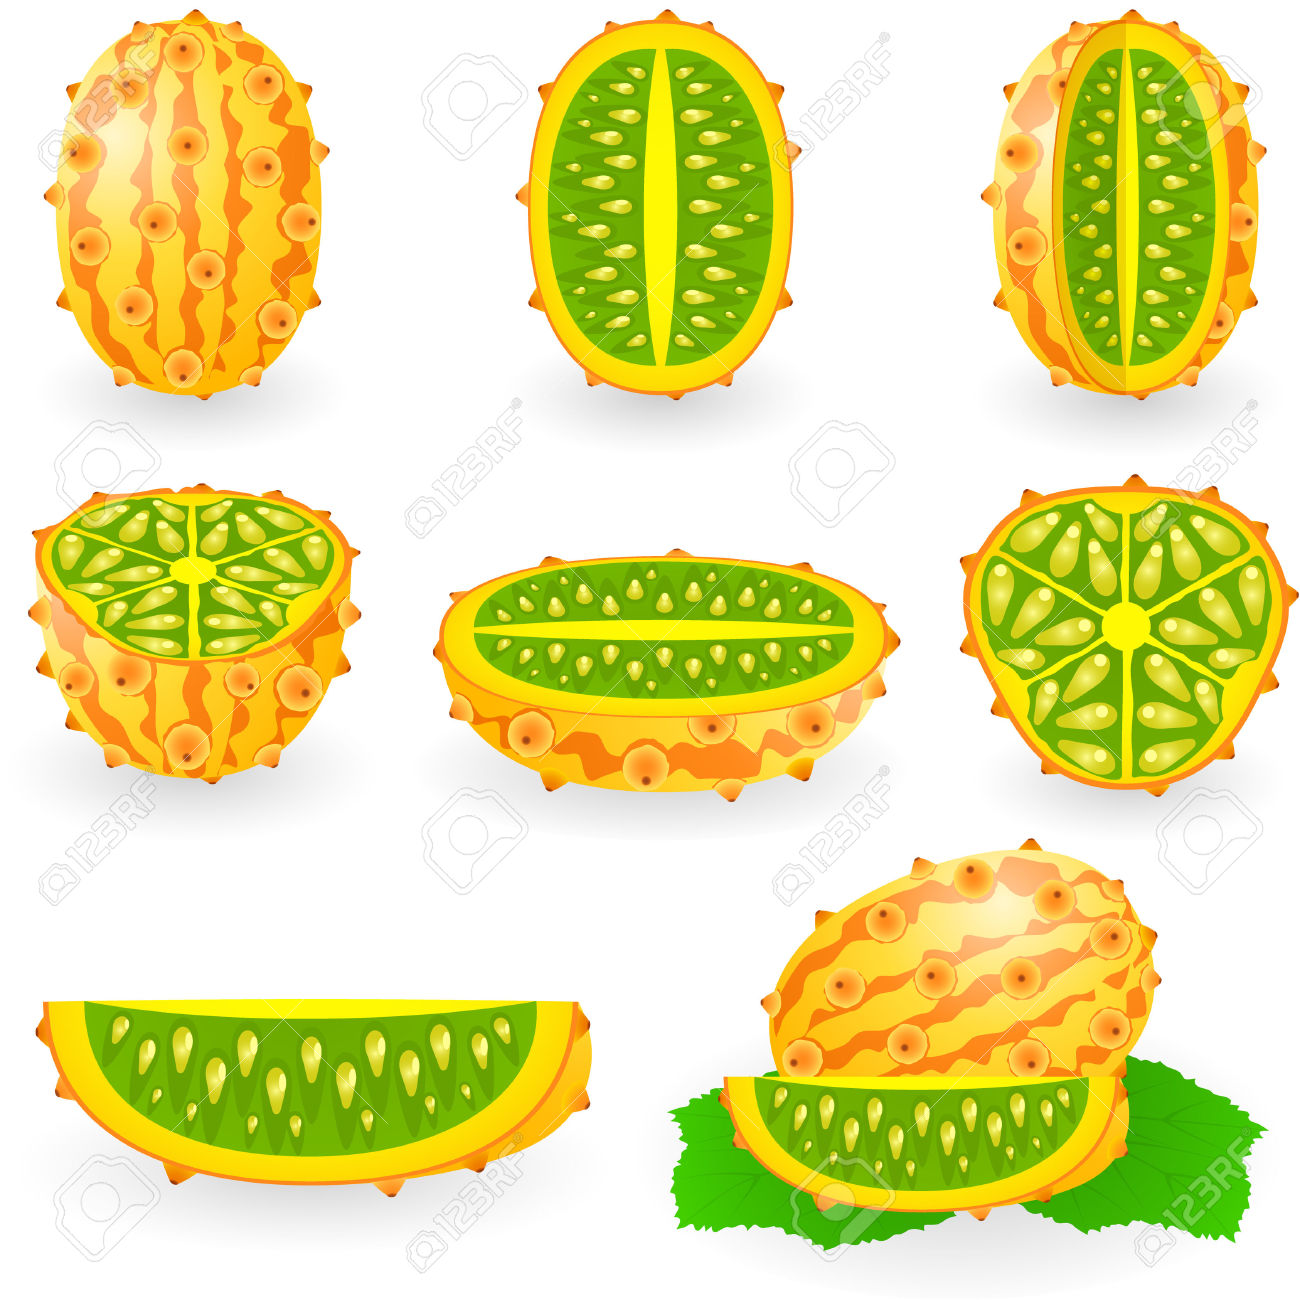 Illustration Of Kiwano Also Known As African Horned Melon Or.